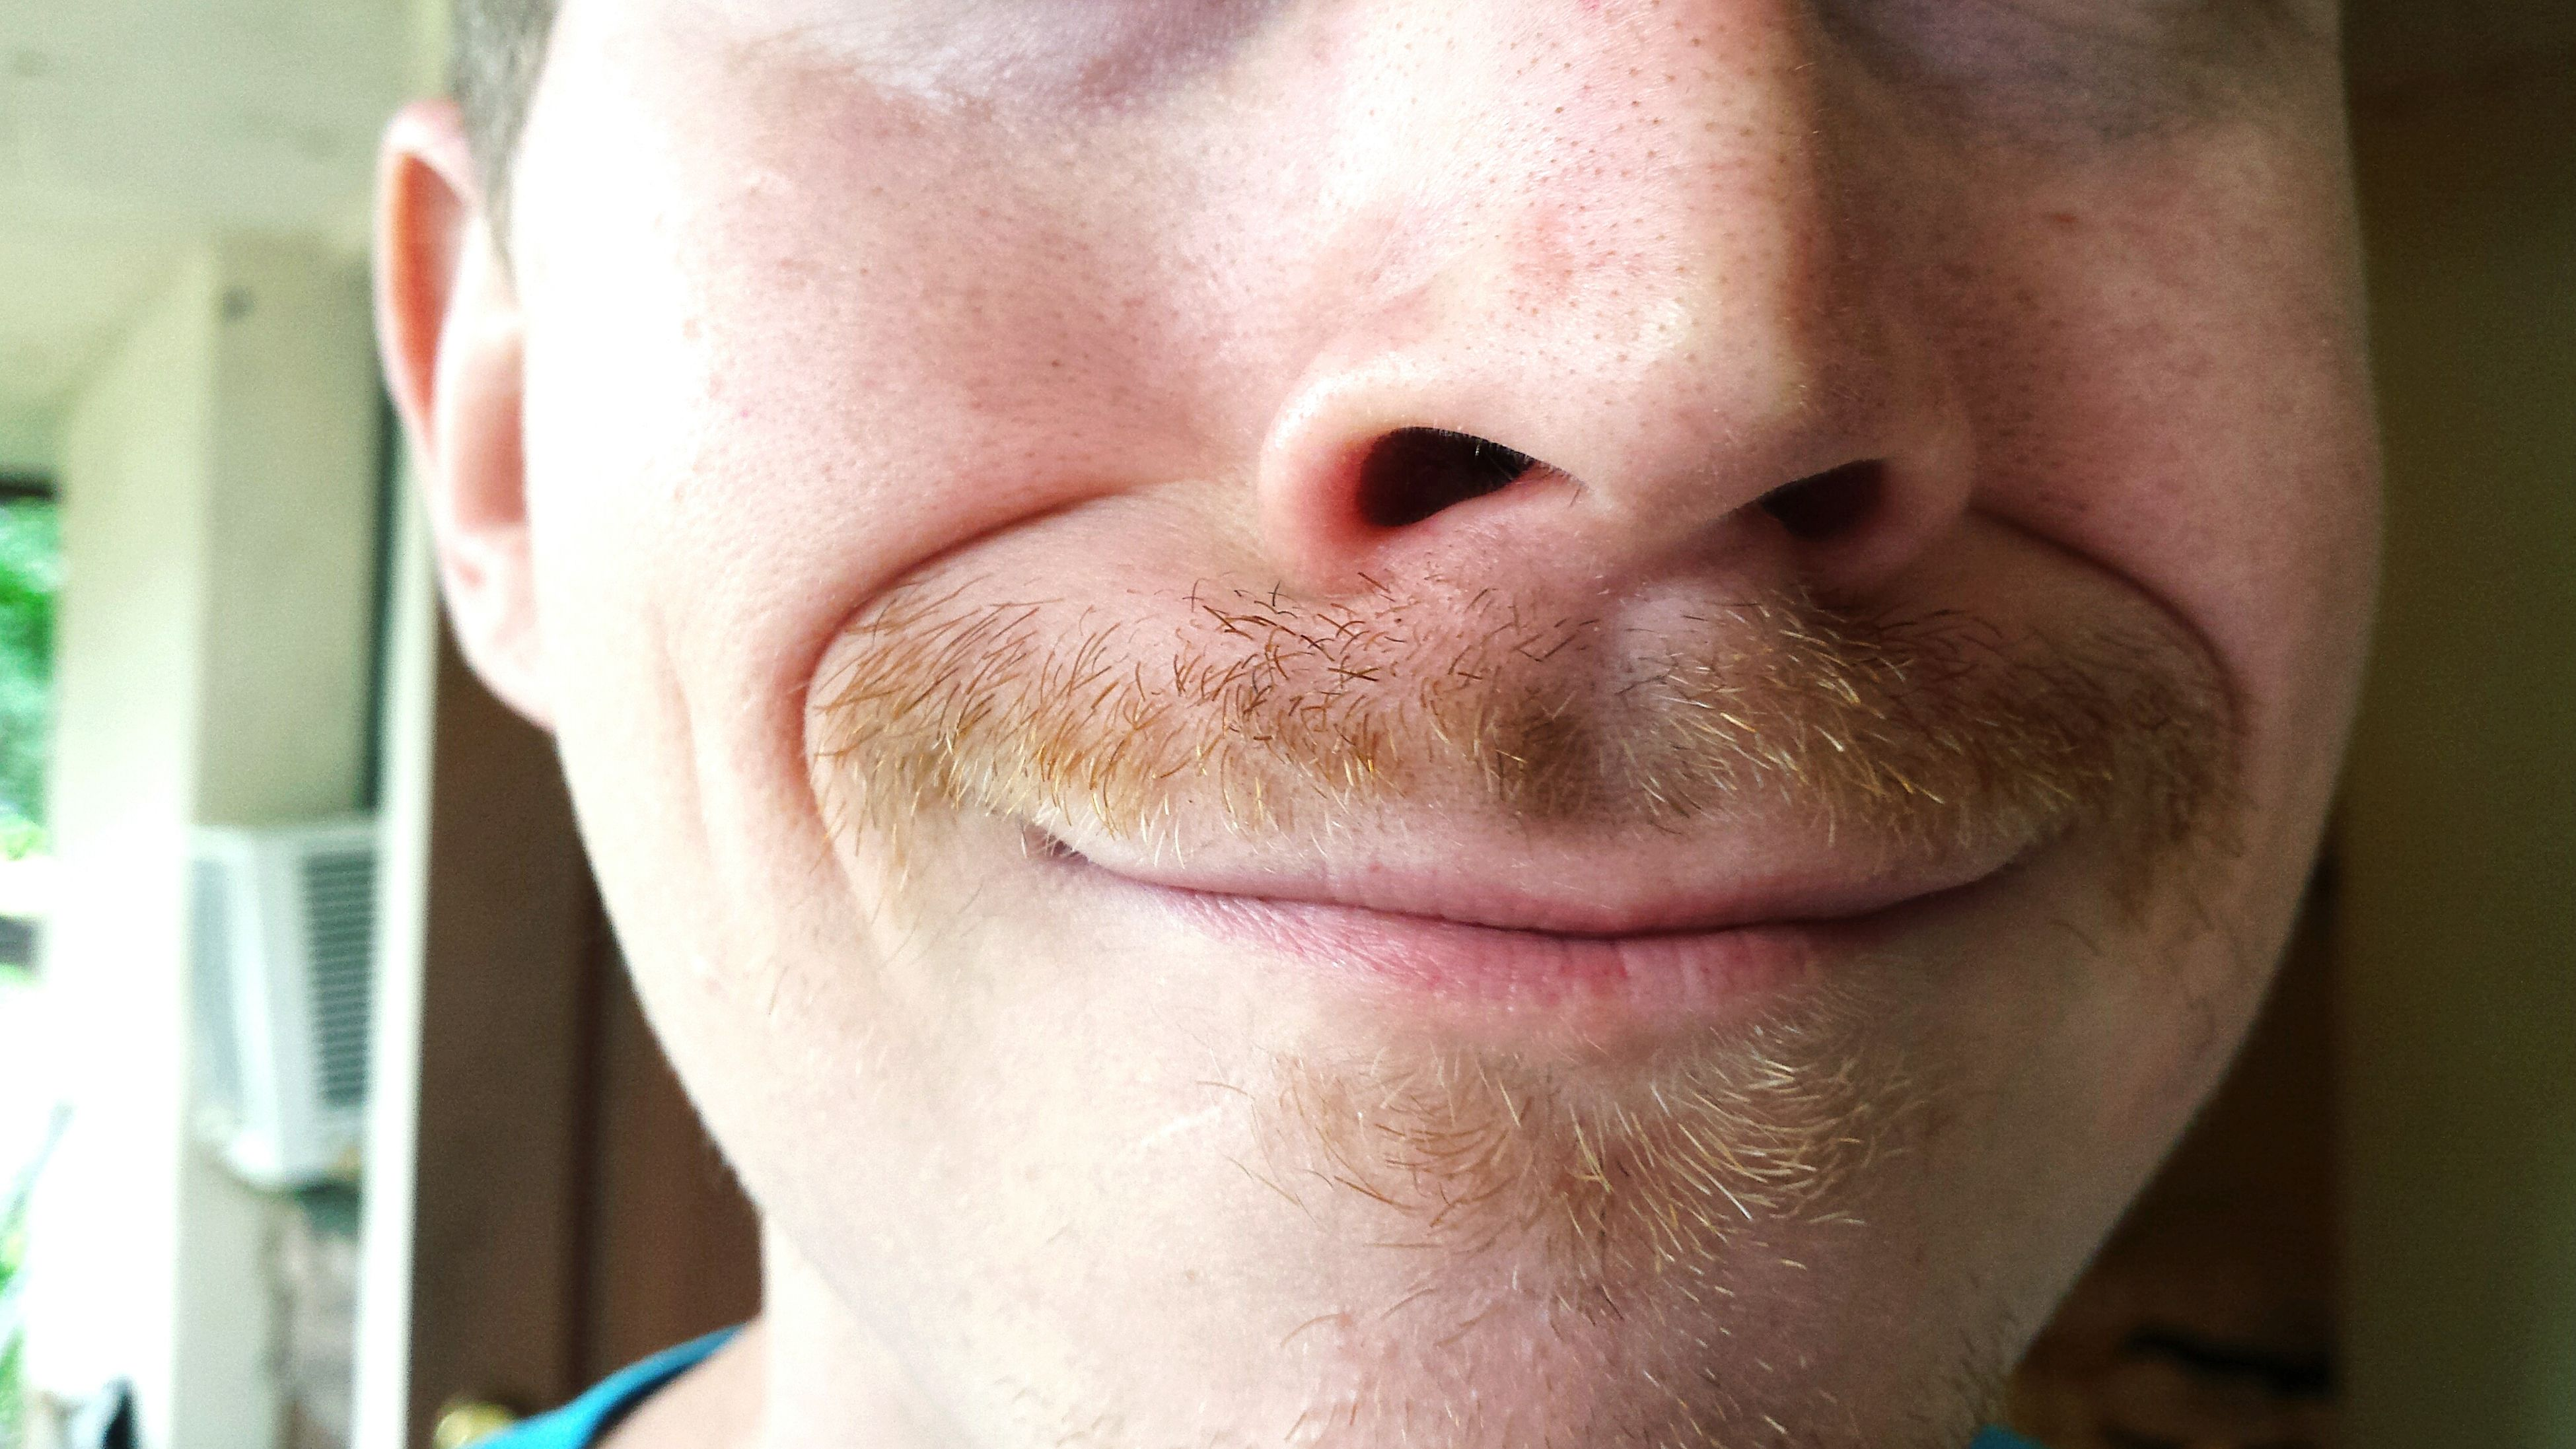 My Mo For Movember MustHave Cheese! Growth Close-up Looking Scruffy. Feel The Mo Trimmed Keeping A Stiff Upper Lip Upper Lip Hair Goofy Mo Smile Shes At It Again The One Yall Call Scrappy